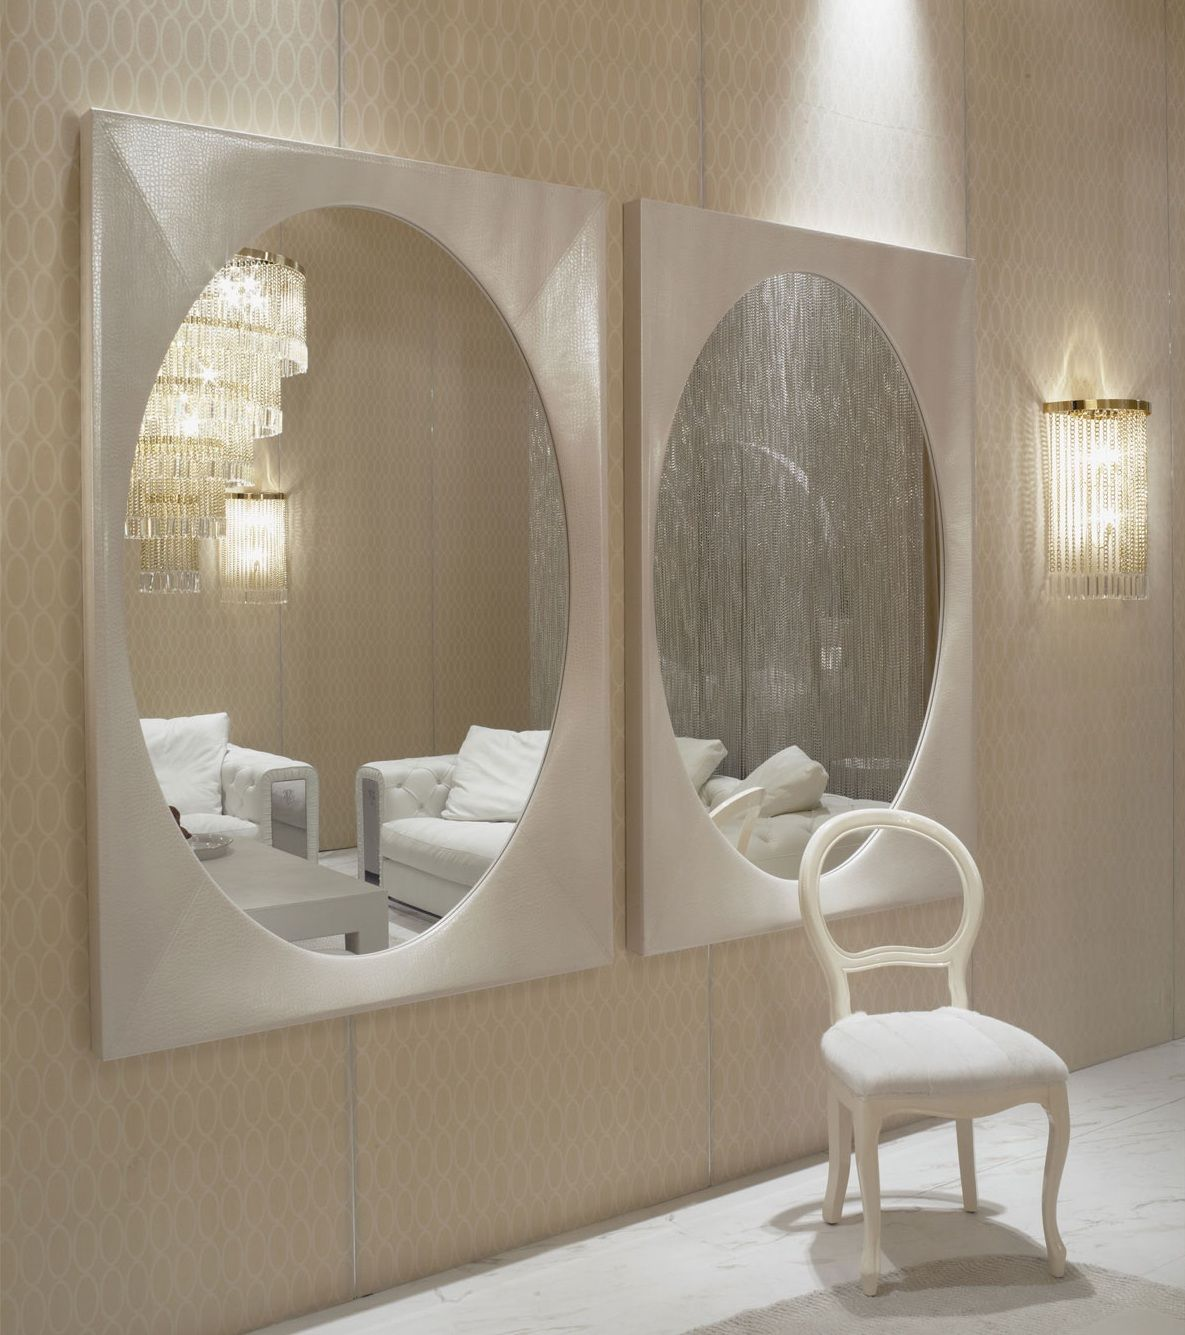 mirror | mirrors | high quality mirror | custom mirror